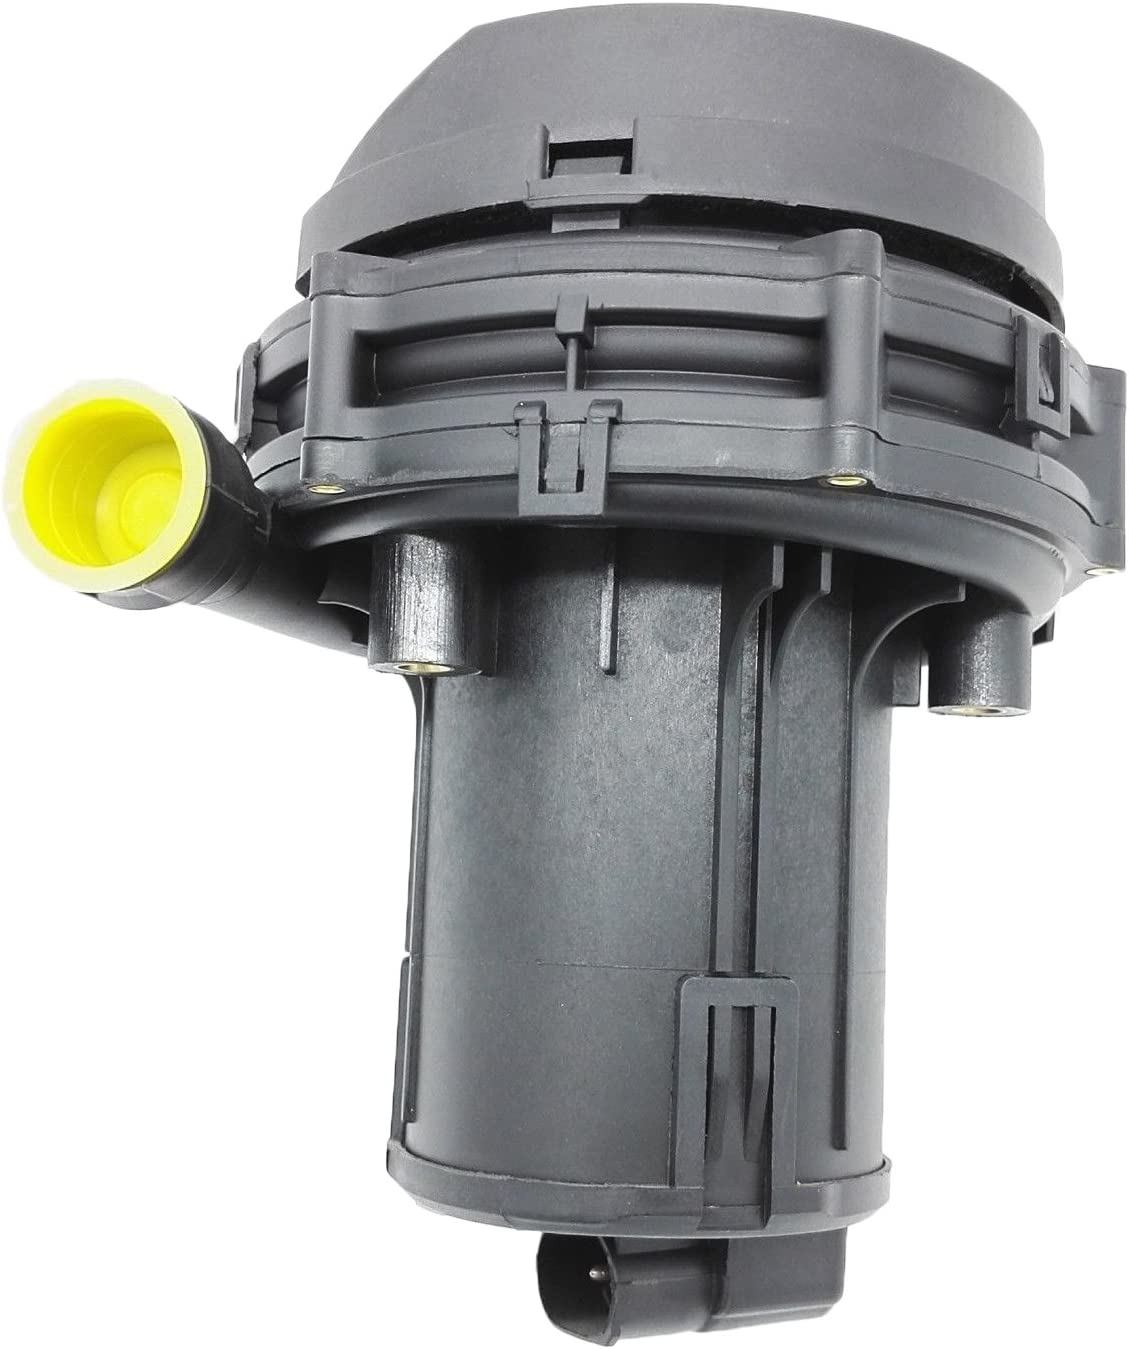 OKAY MOTOR Secondary Air Pump for Land Rover Discovery II Range Rover P38 4.0 4.6 WIB100030